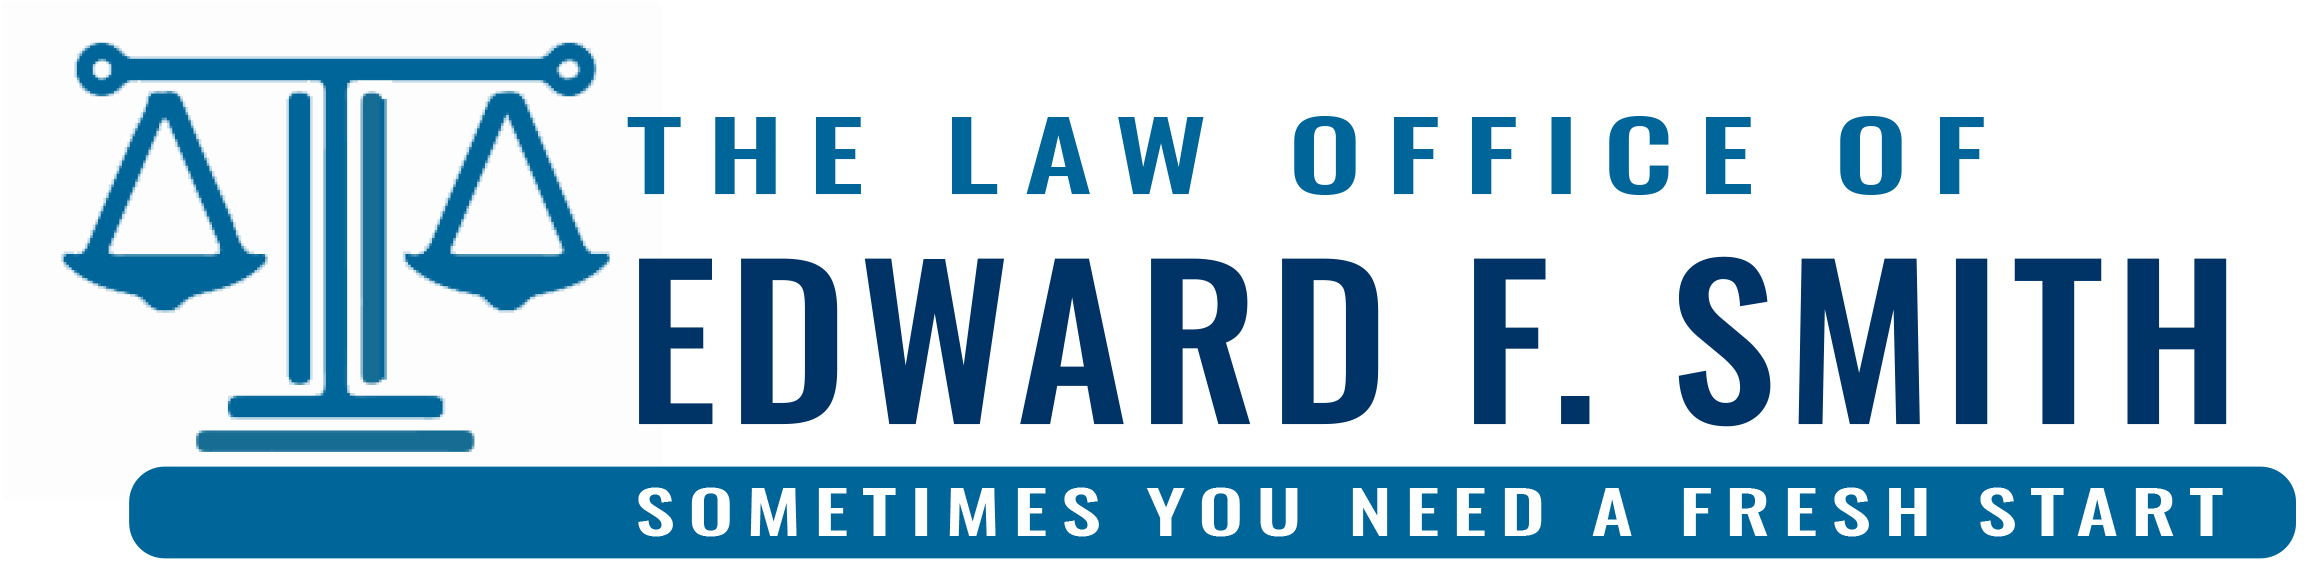 The Law Office of Edward F. Smith Logo